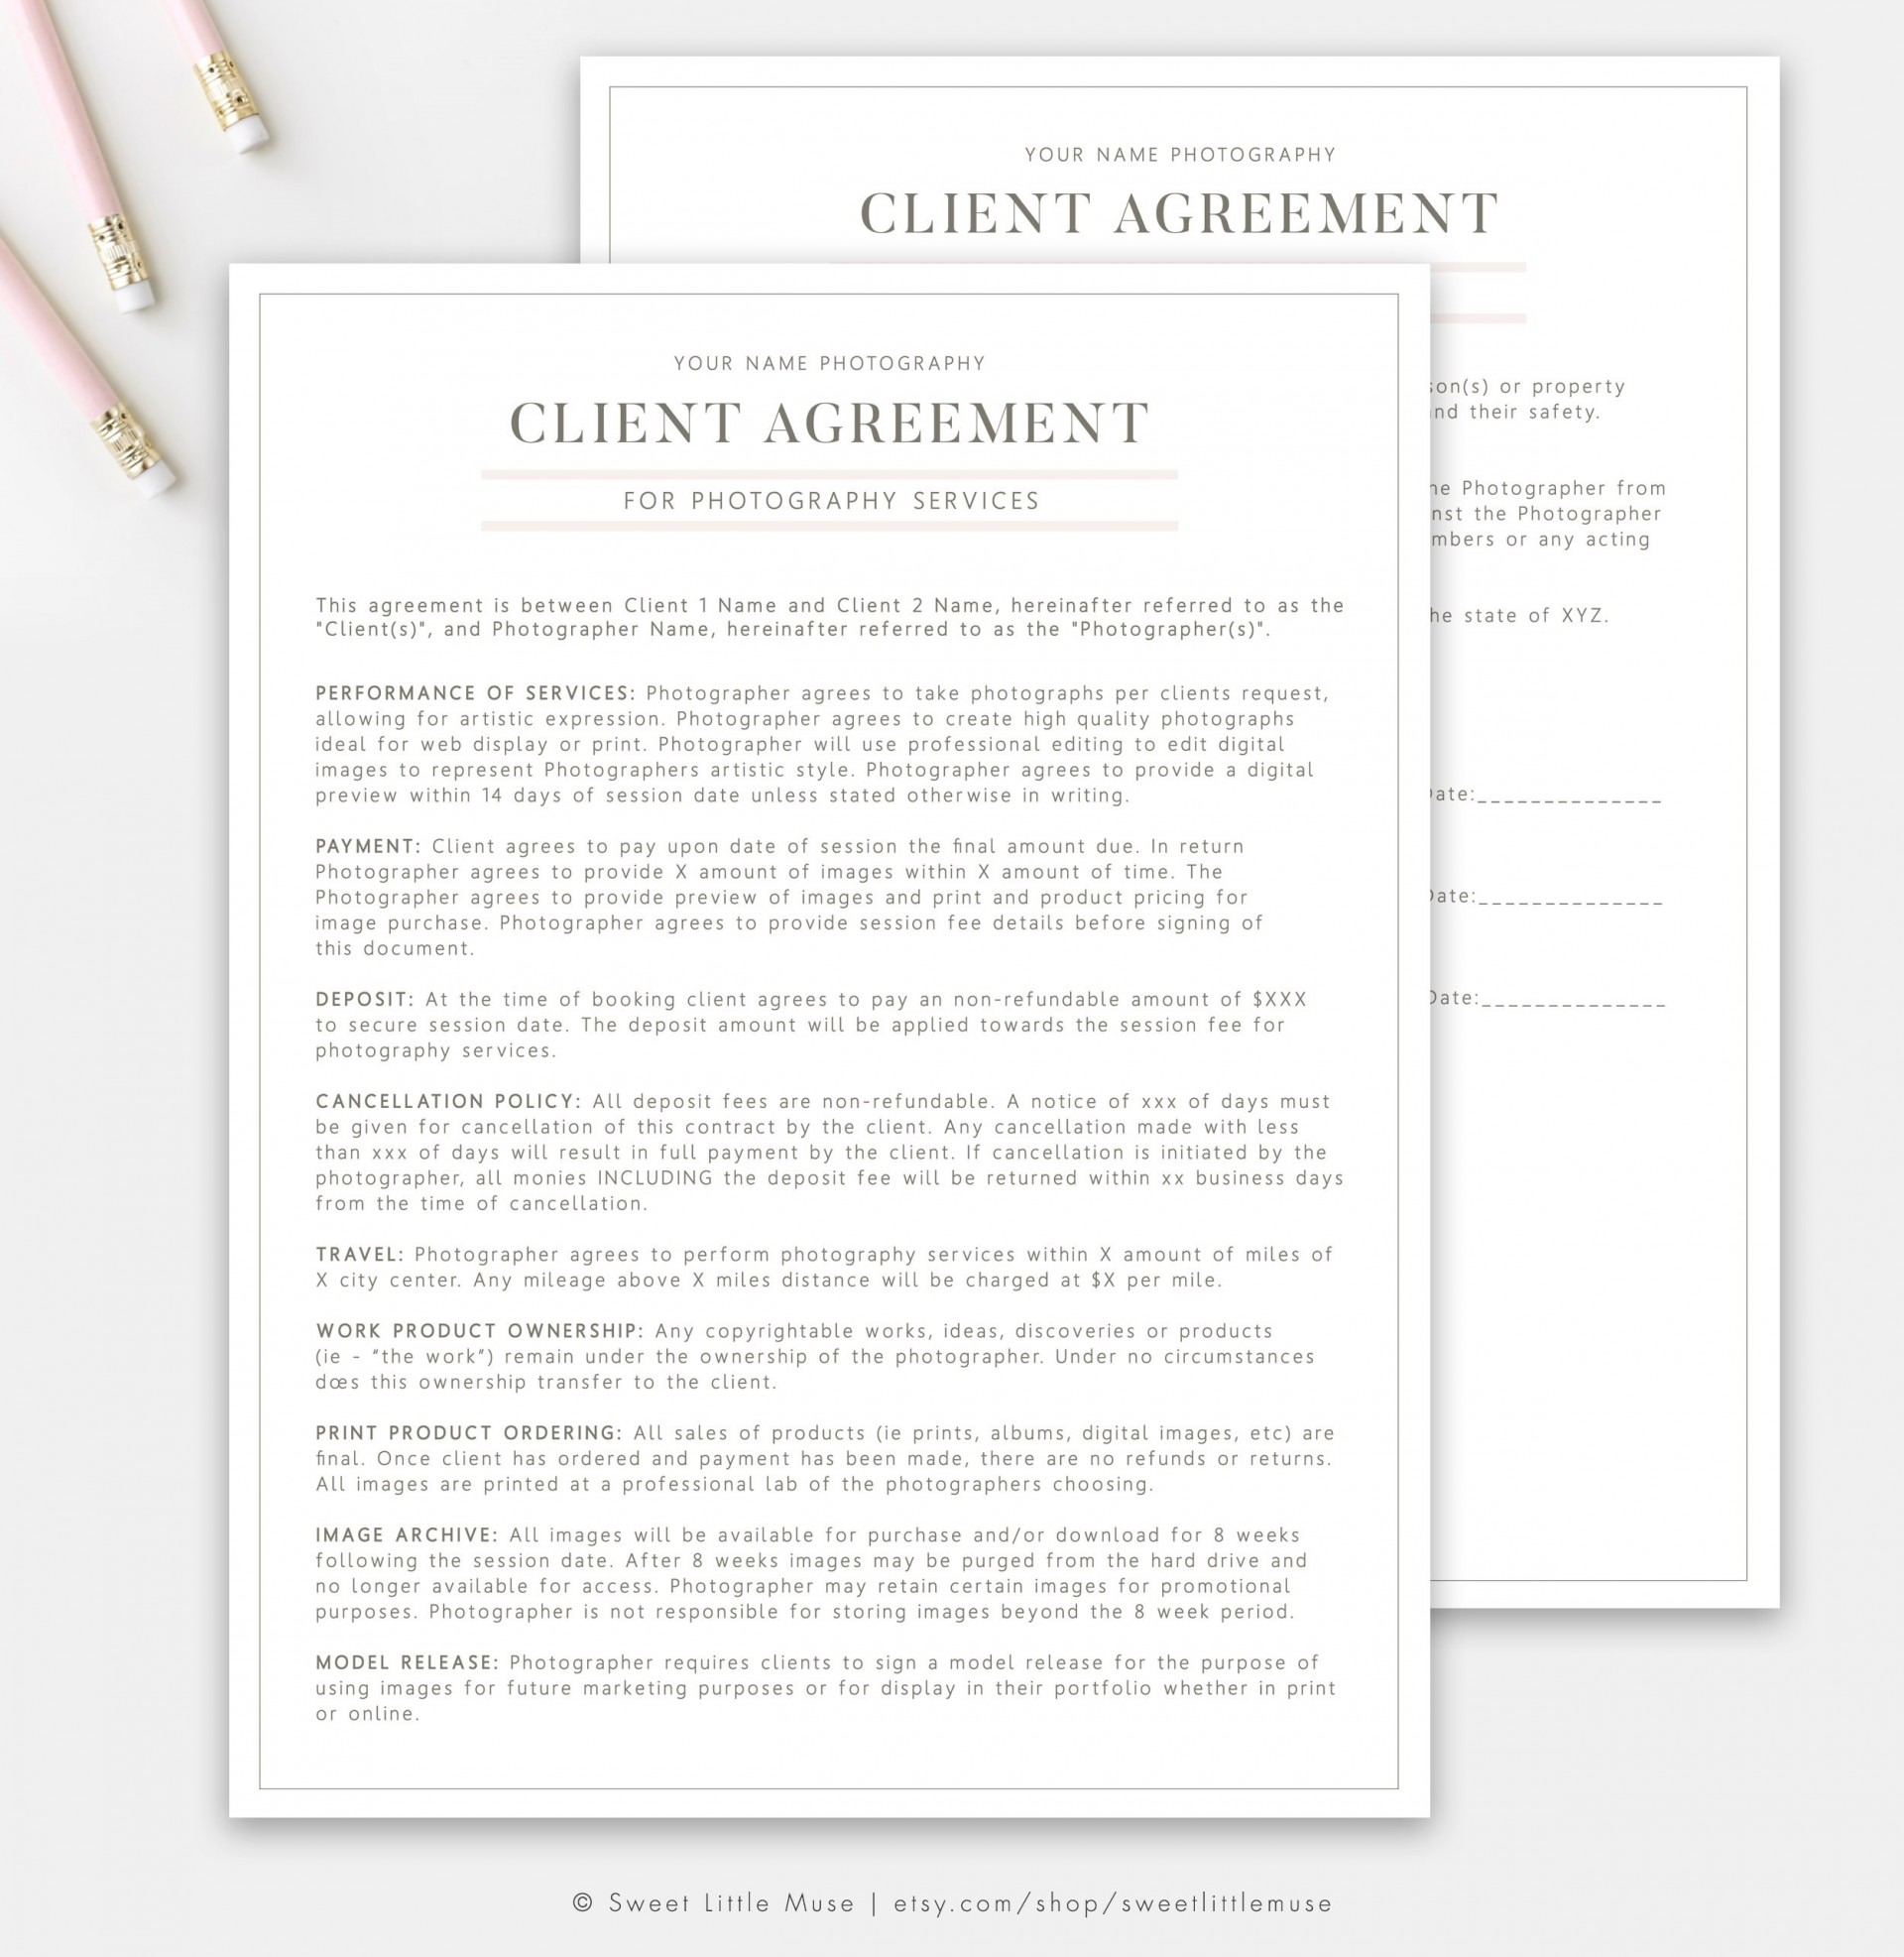 003 Wonderful Wedding Photographer Contract Template High Definition  Free Photography Uk1920